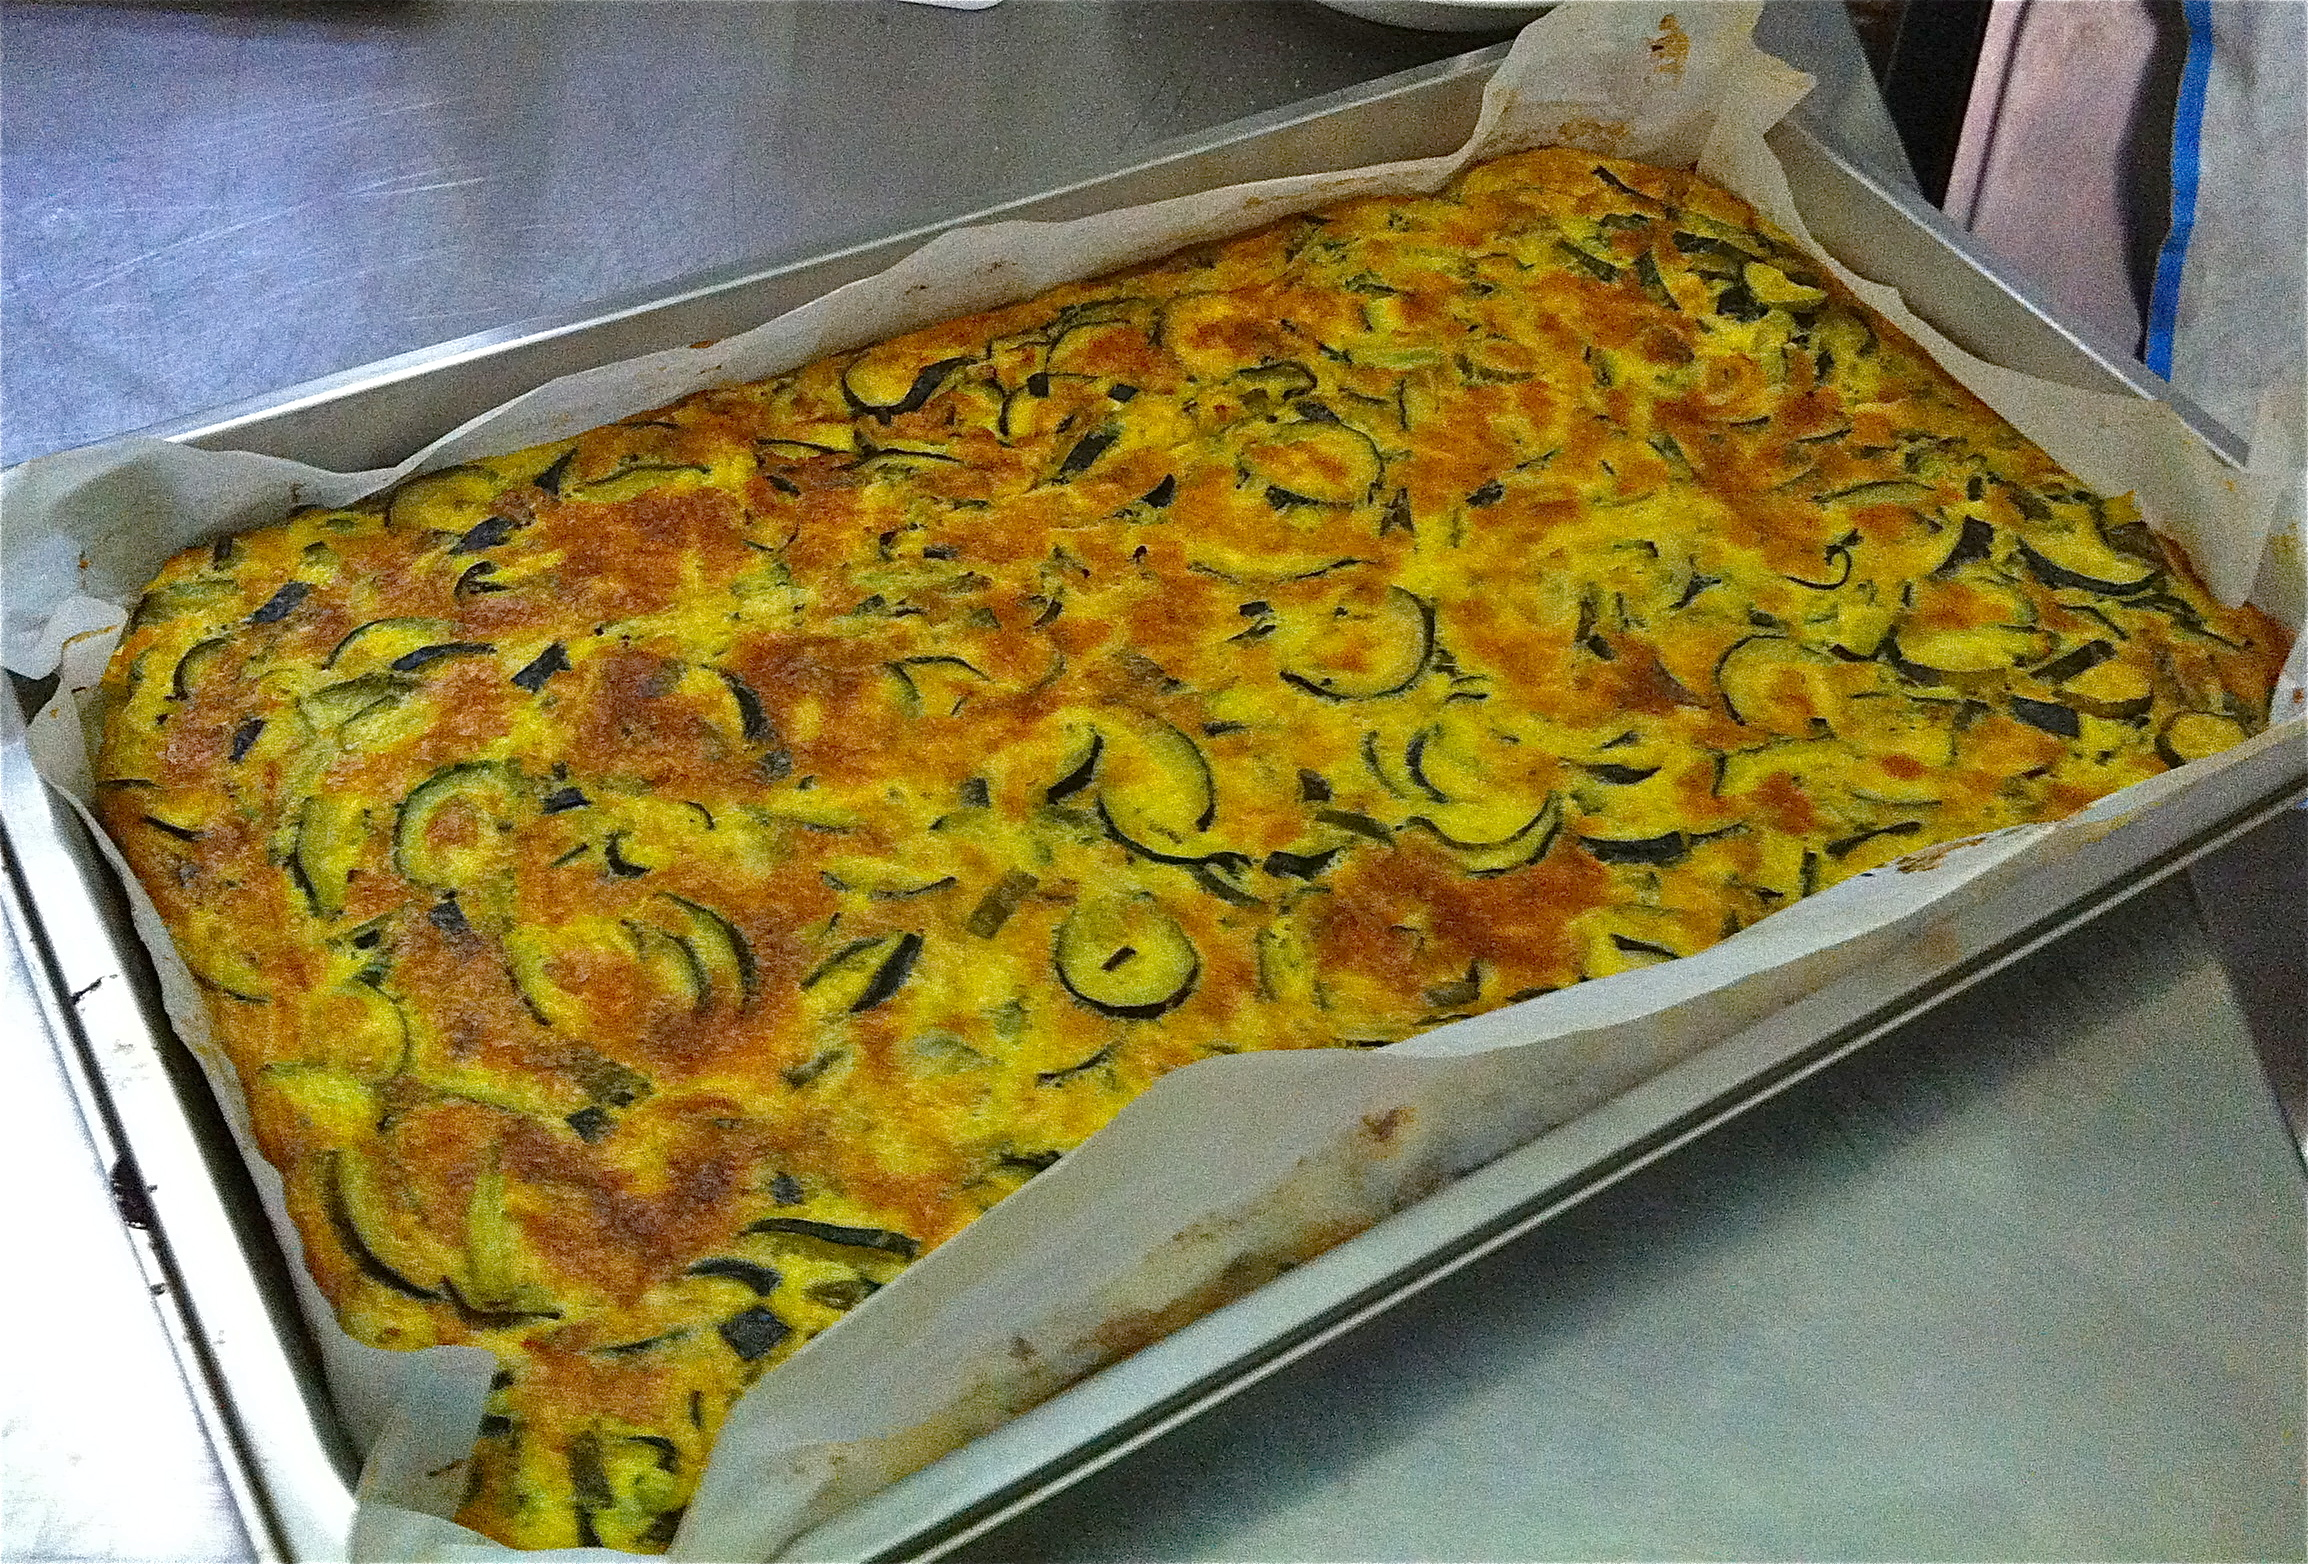 zucchini frittata 5 6 big zucchinis sliced into thin circles 500g ...